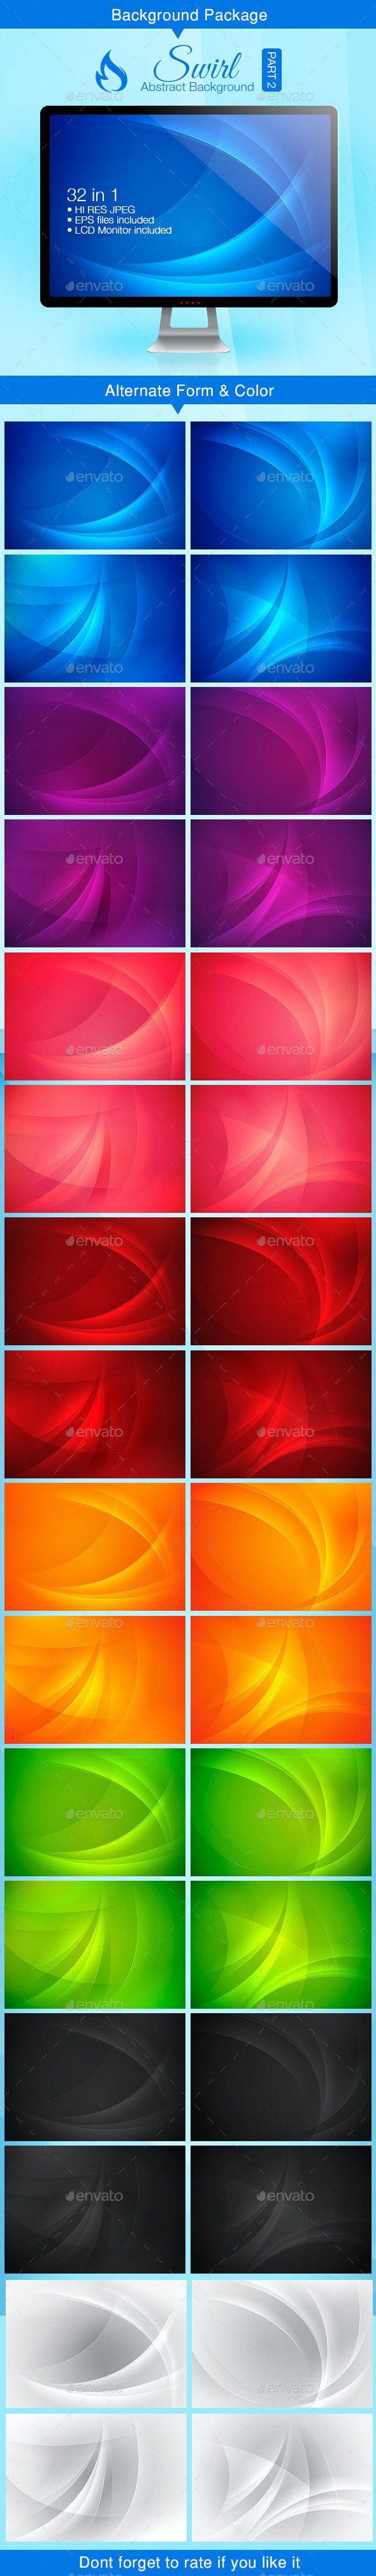 Swirl Abstract Background - Part 2 - Backgrounds Decorative